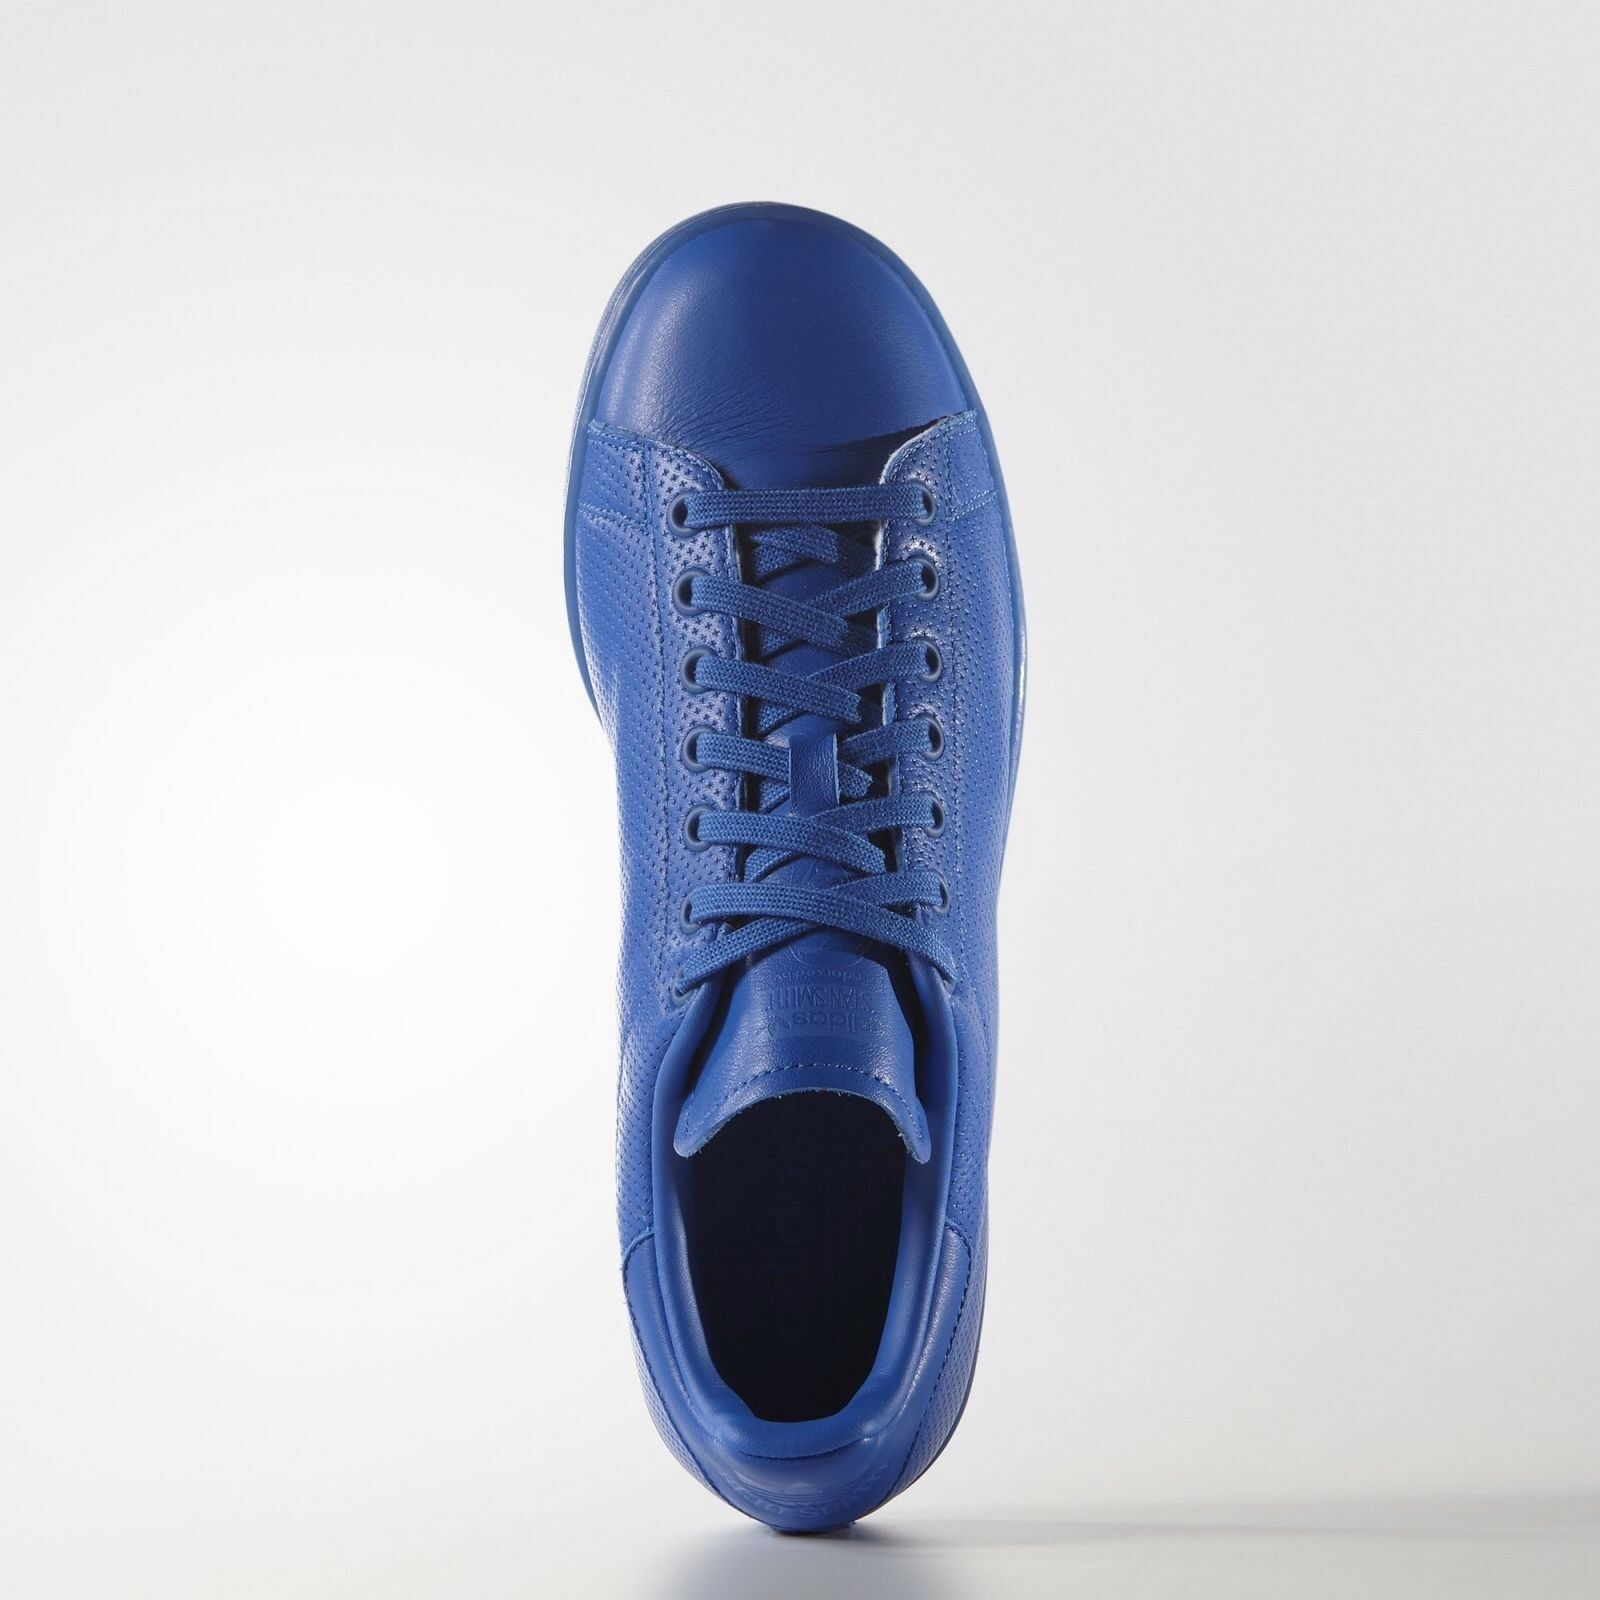 Adidas Original Stan Smith Mens Perforated Leather bluee Athletic Sneakers - NEW